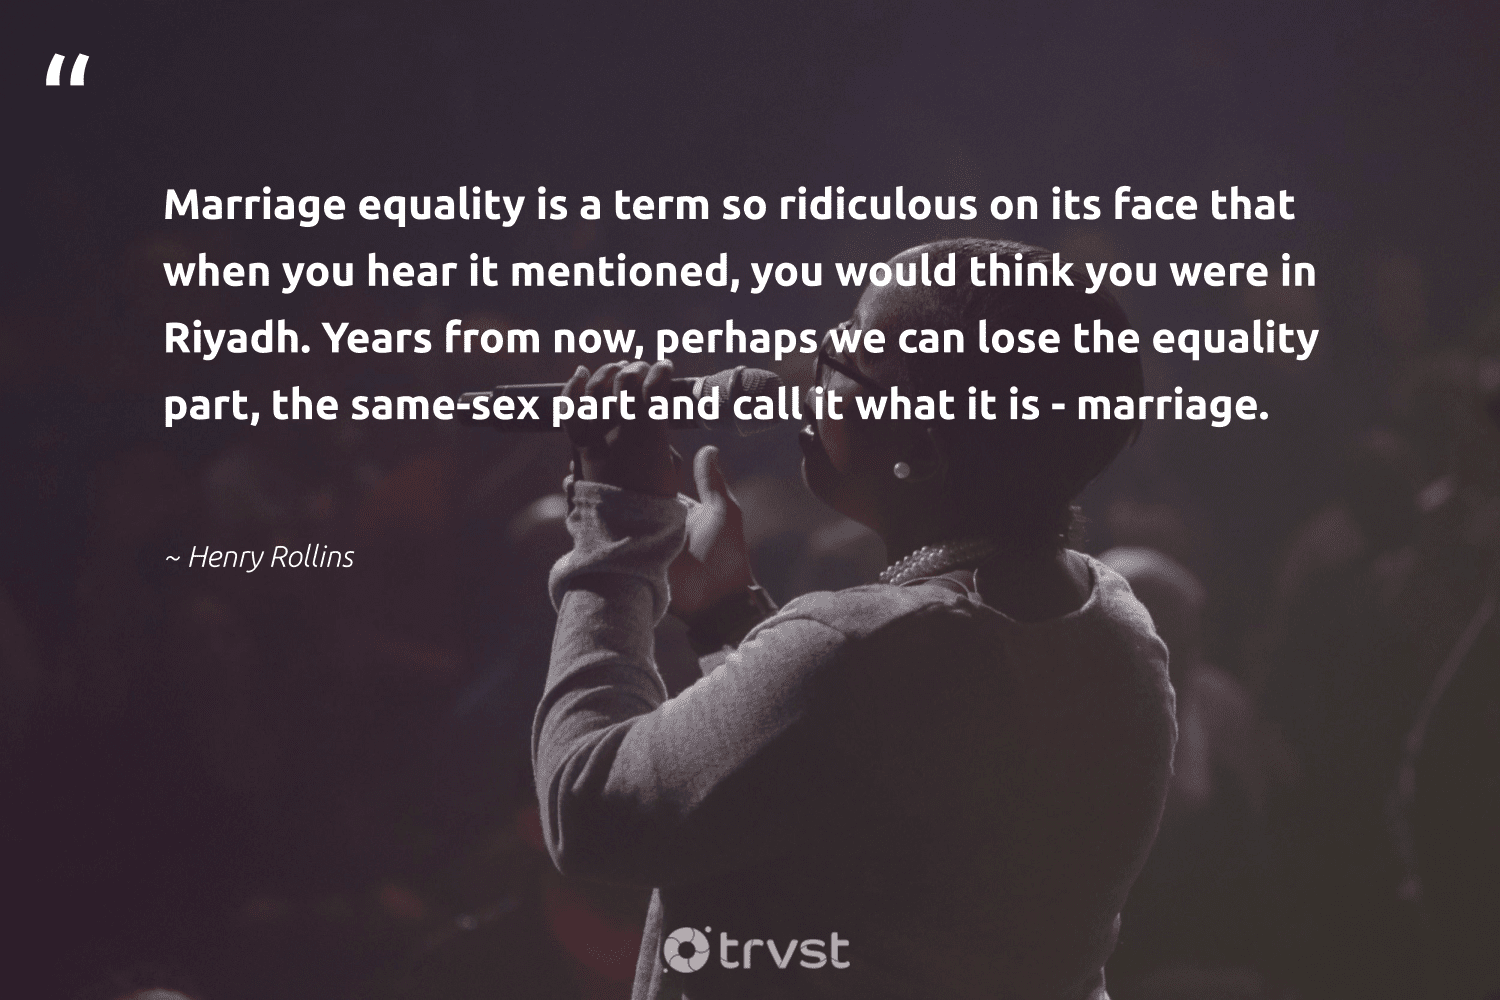 """""""Marriage equality is a term so ridiculous on its face that when you hear it mentioned, you would think you were in Riyadh. Years from now, perhaps we can lose the equality part, the same-sex part and call it what it is - marriage.""""  - Henry Rollins #trvst #quotes #equality #equalopportunity #socialchange #makeadifference #socialimpact #standup #socialgood #giveback #impact #equalrights"""